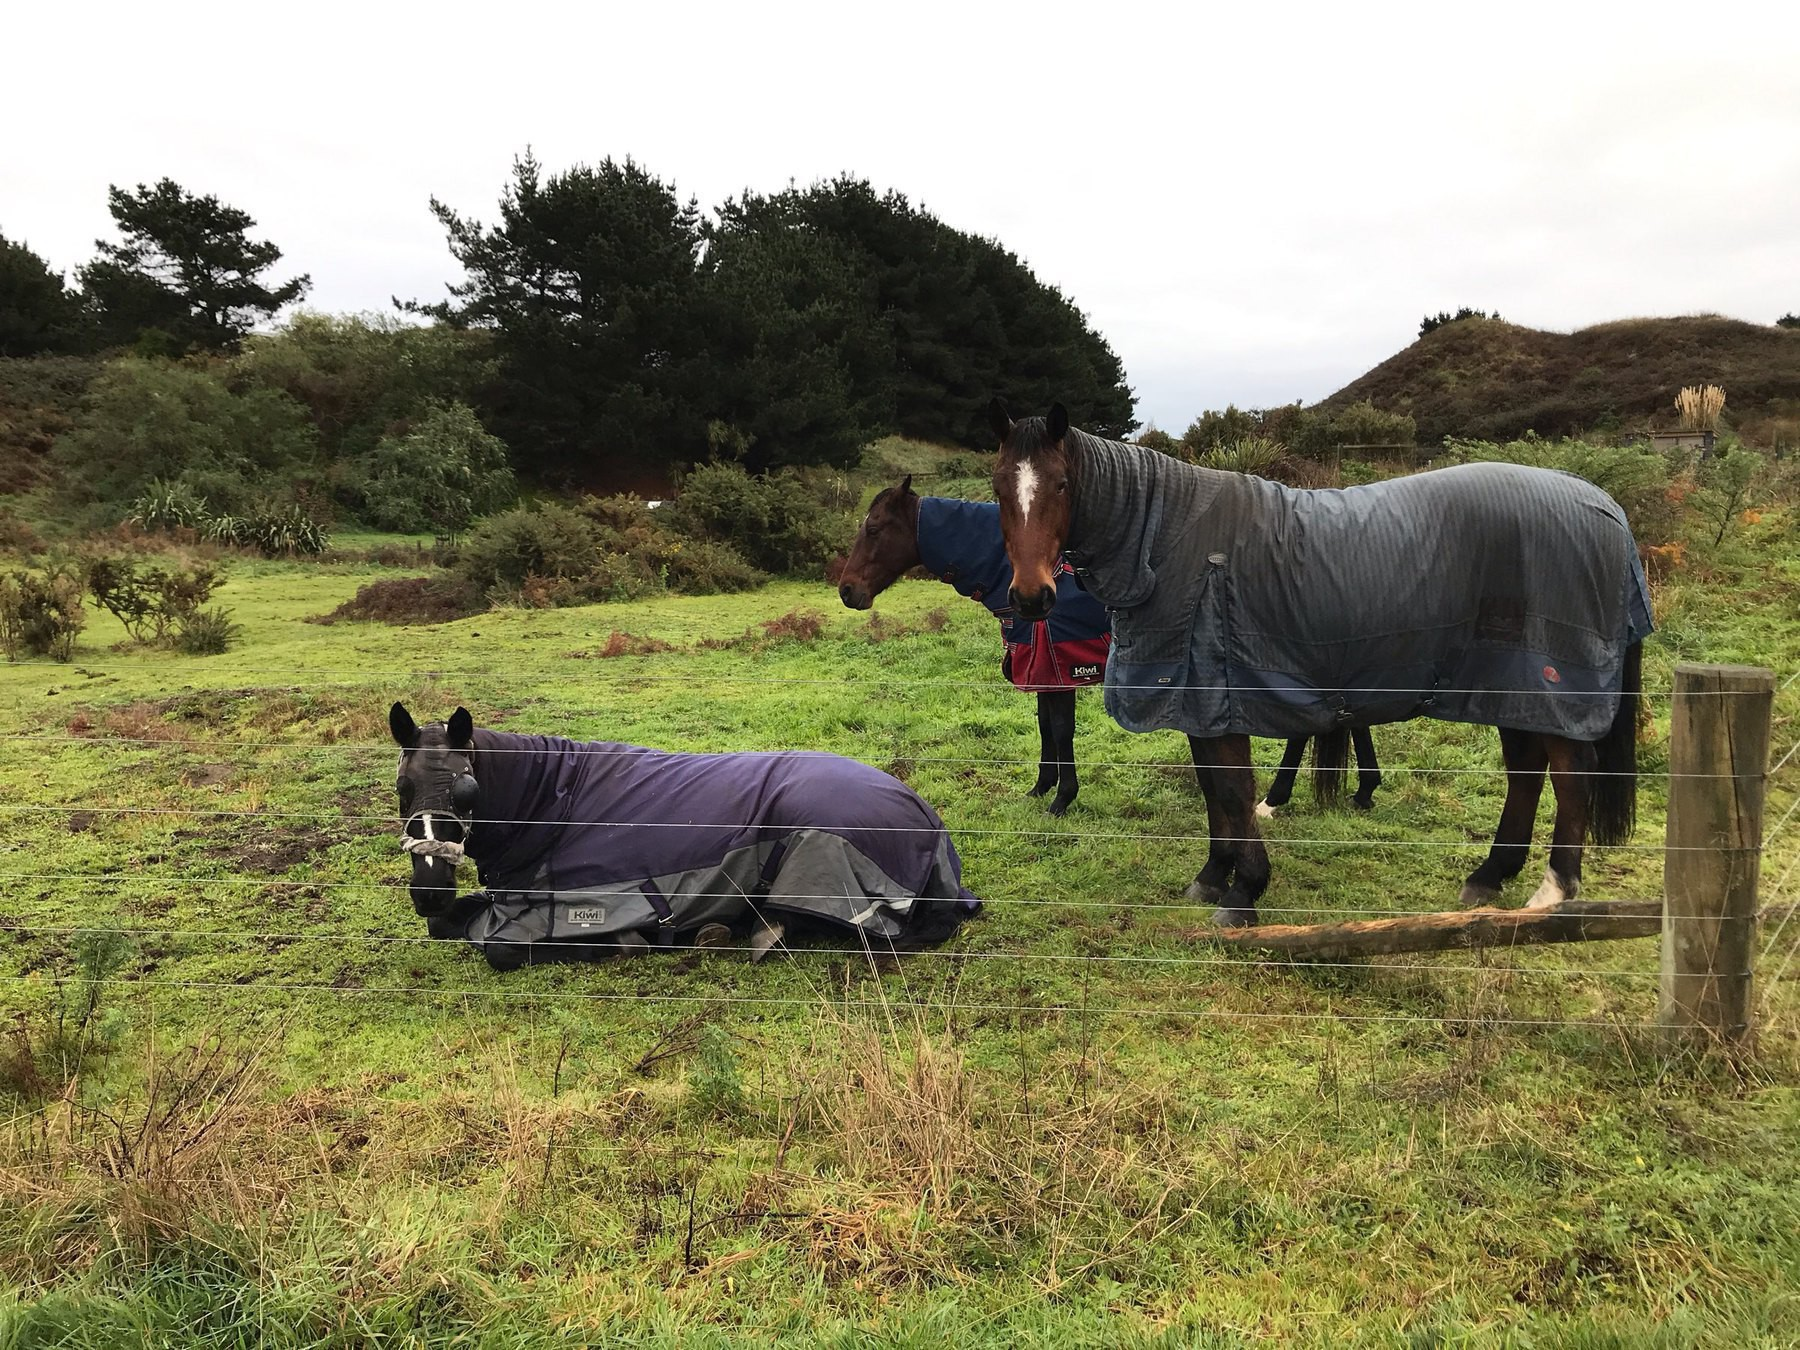 One horse lying down with its feet tucked under it with two other horses standing by